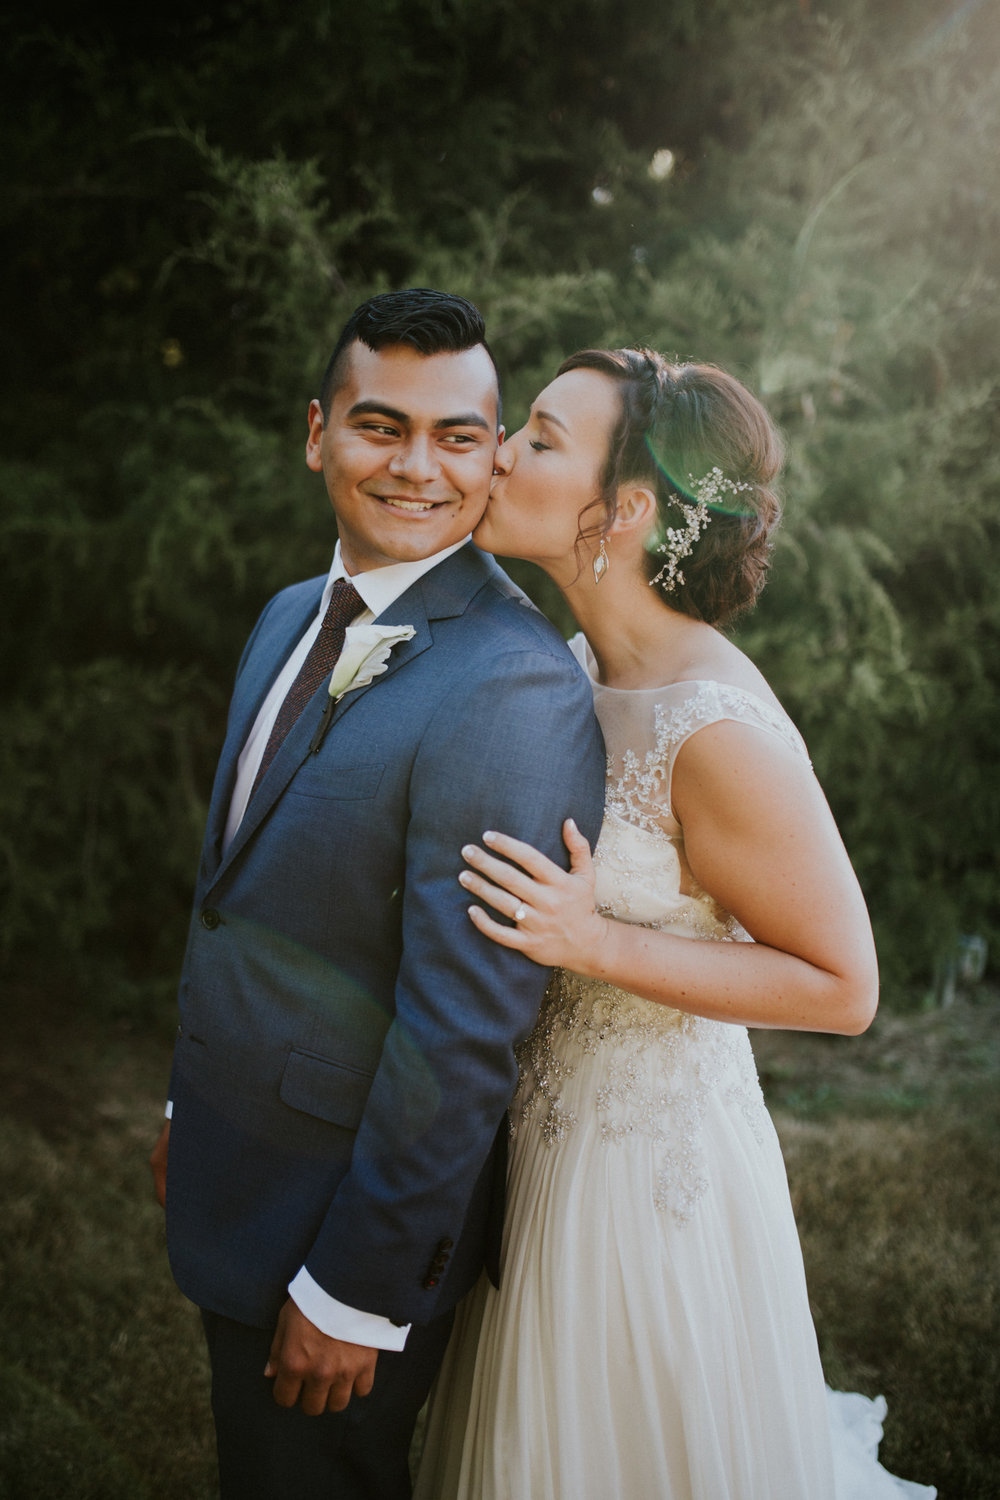 Lauren + Arturo | Grapevine, Texas Wedding